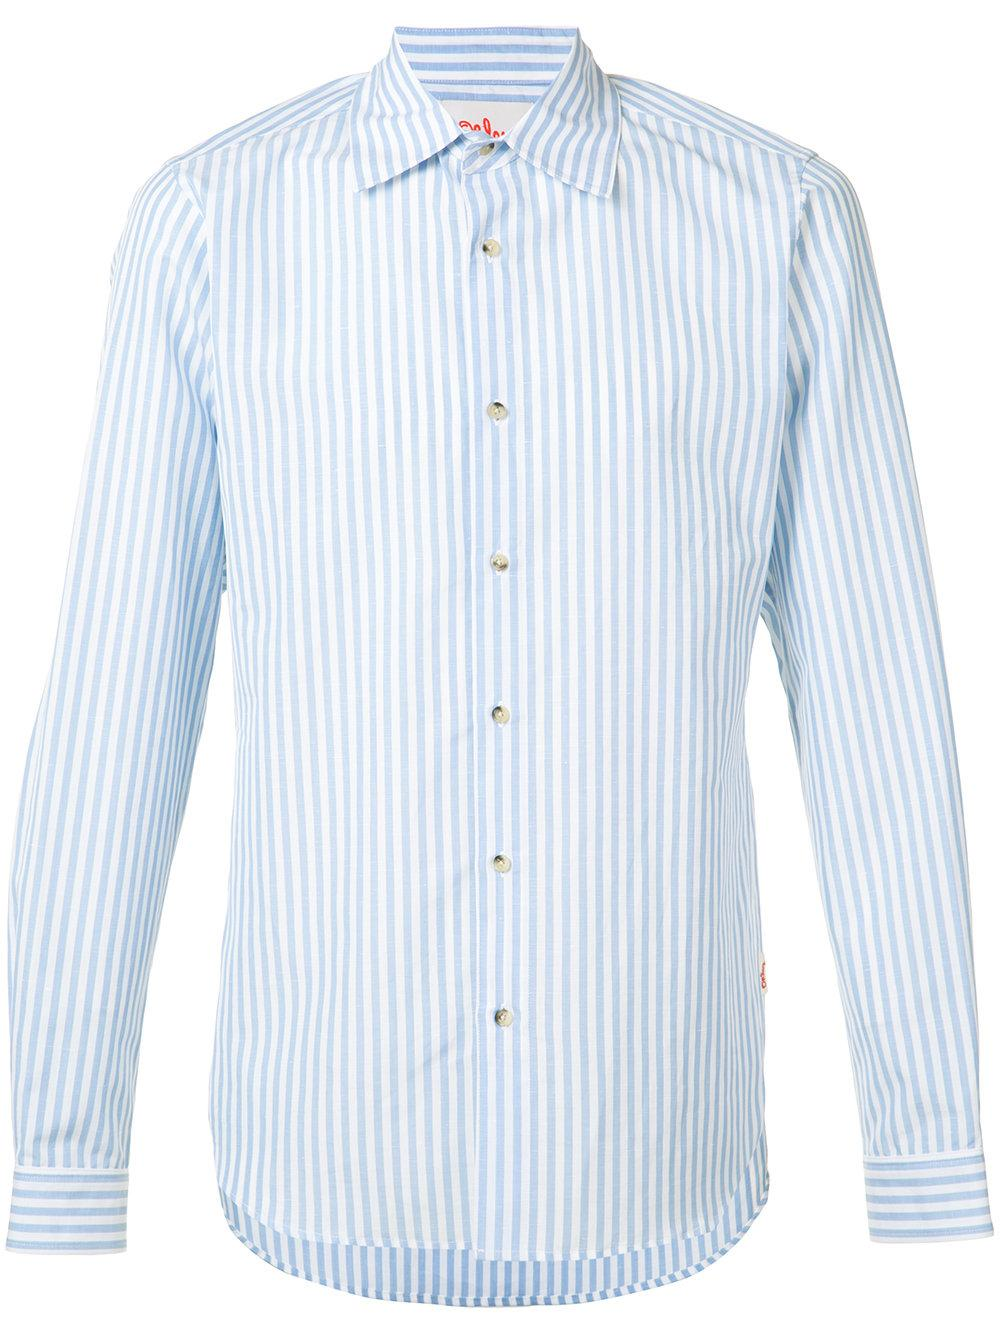 Orley Striped Shirt In Blue For Men Lyst